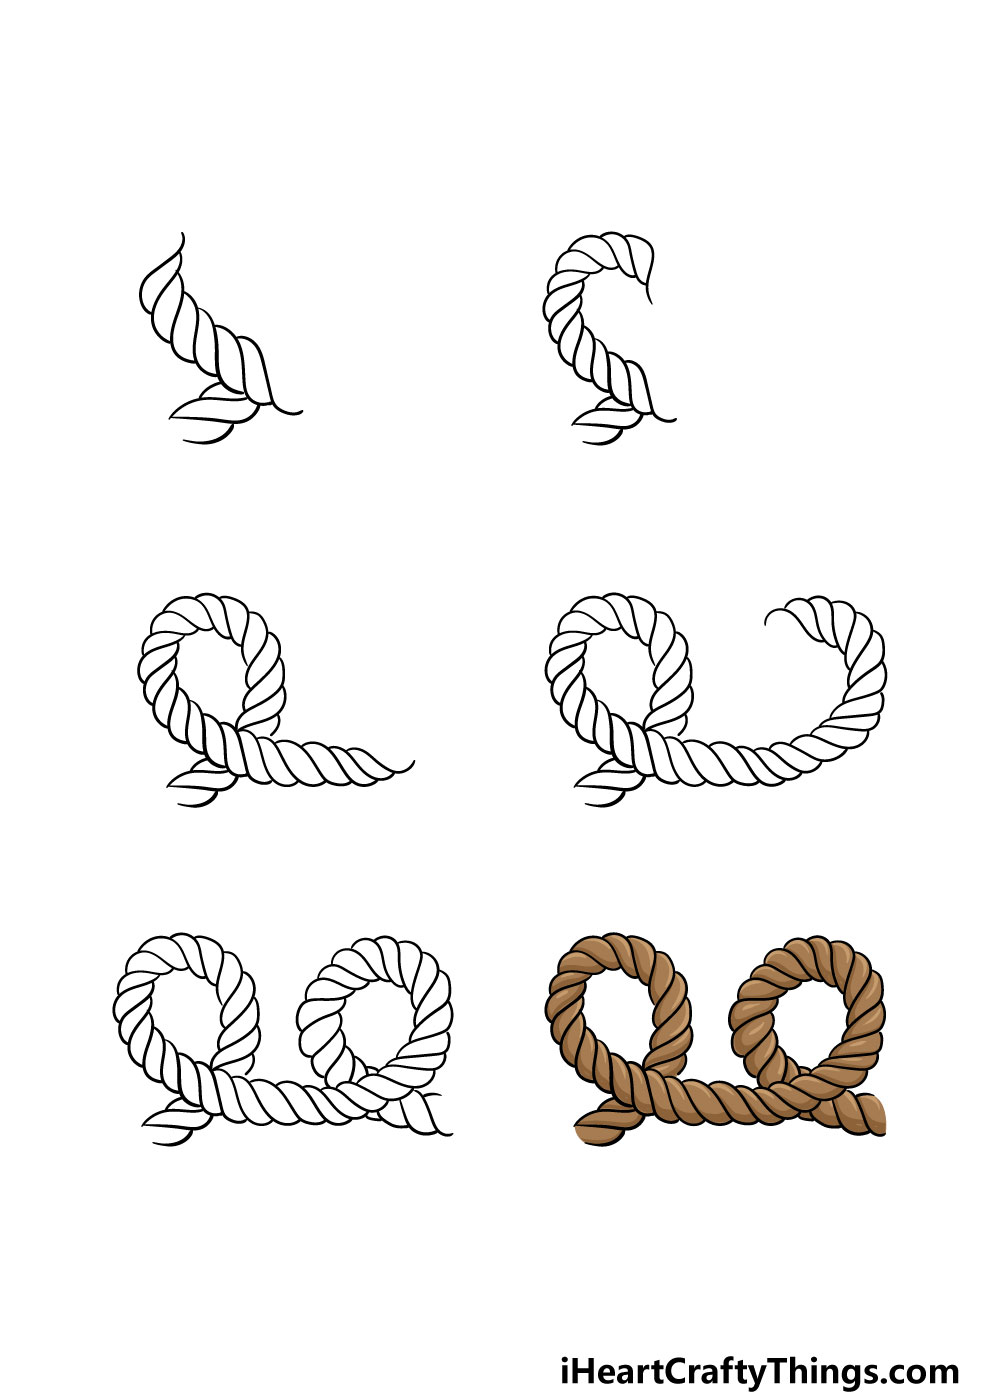 how to draw a rope in 6 steps